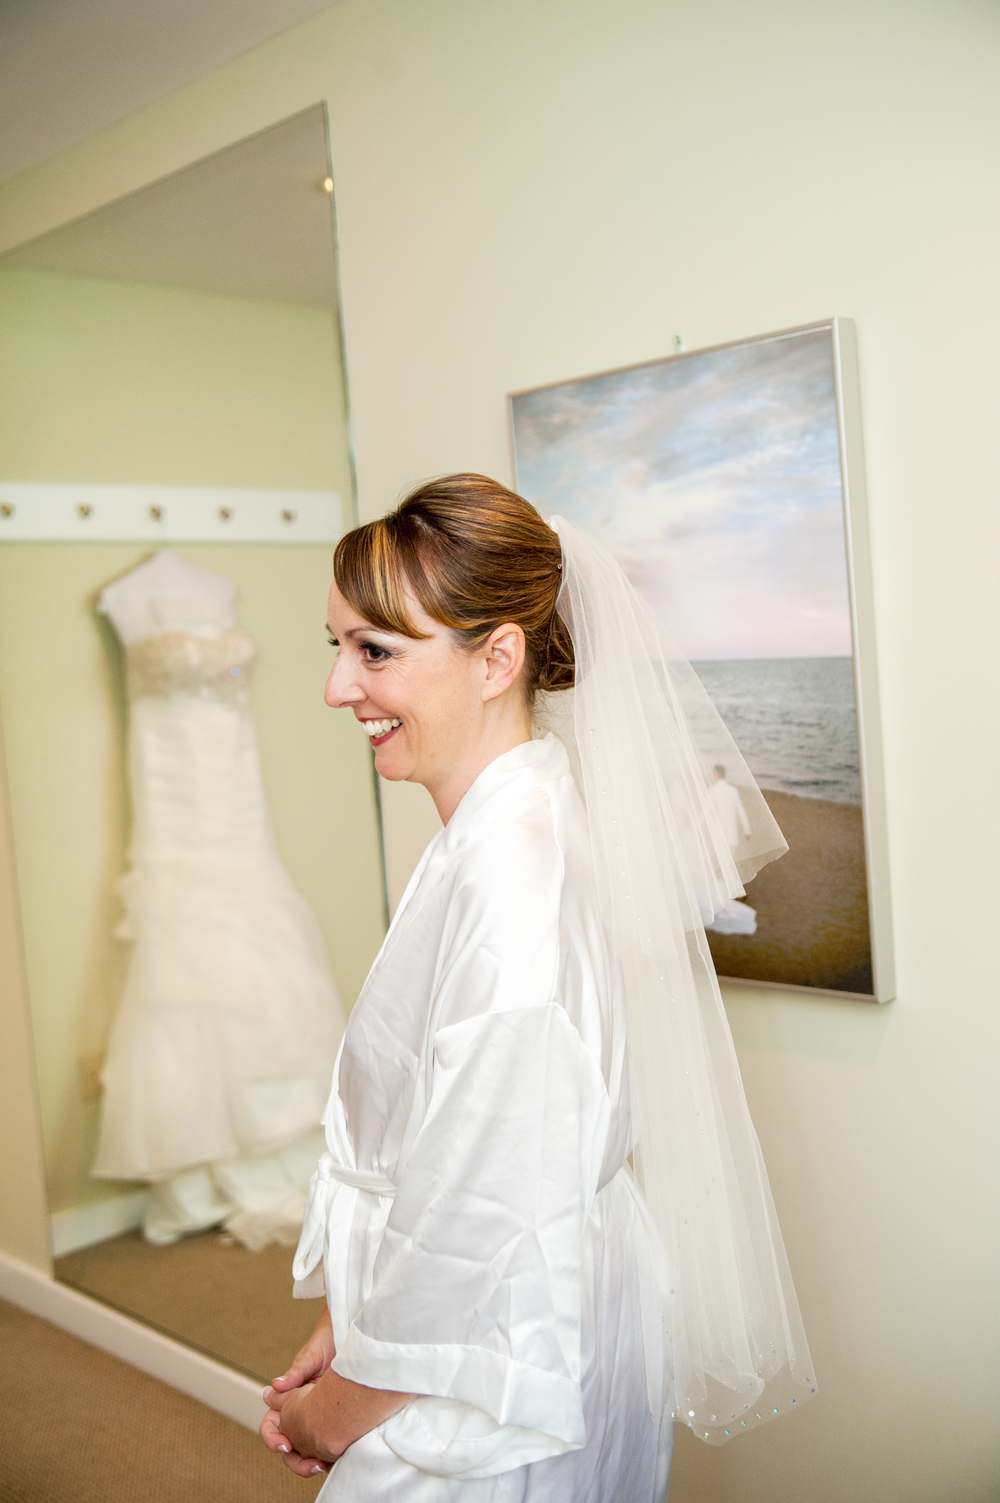 Cape Cod wedding photographer | House of Lubold Photography